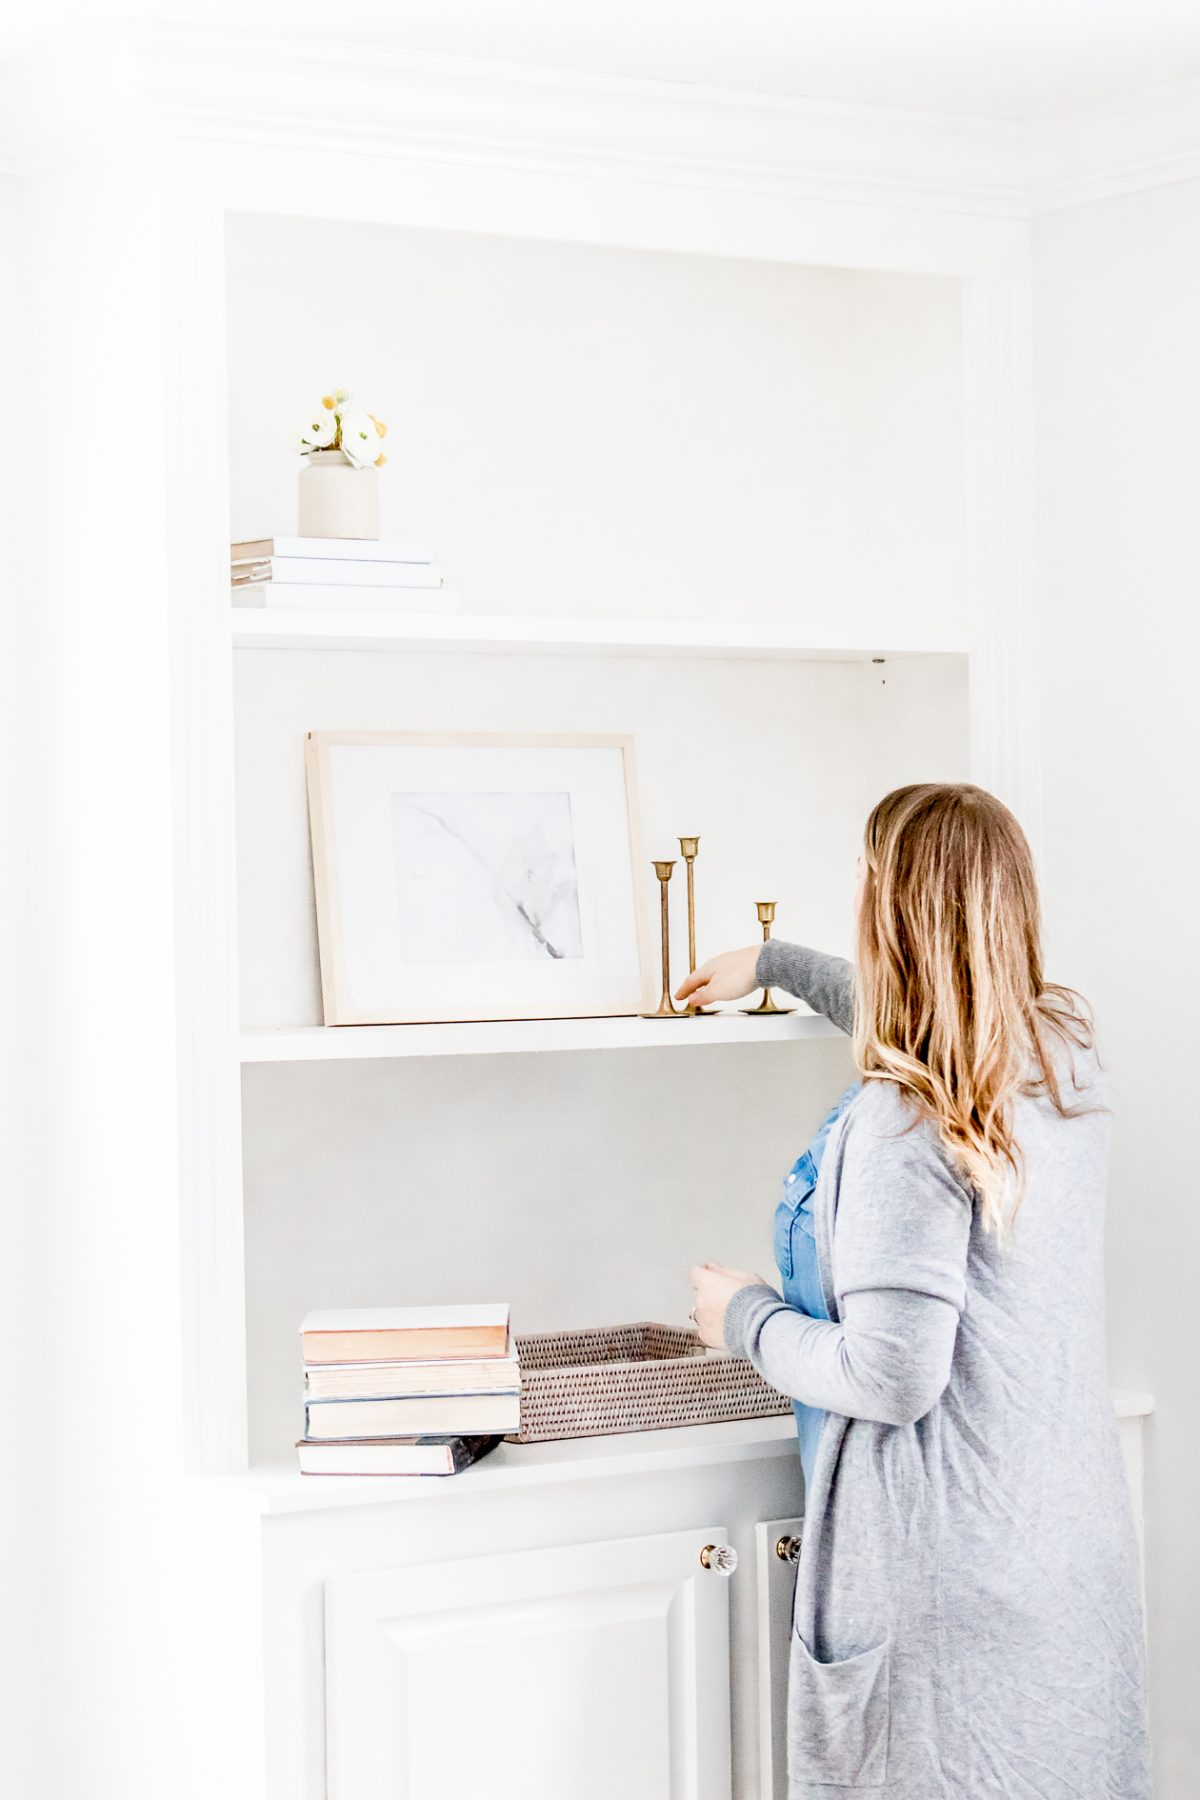 Woman wearing gray sweater and placing candlesticks on white shelf